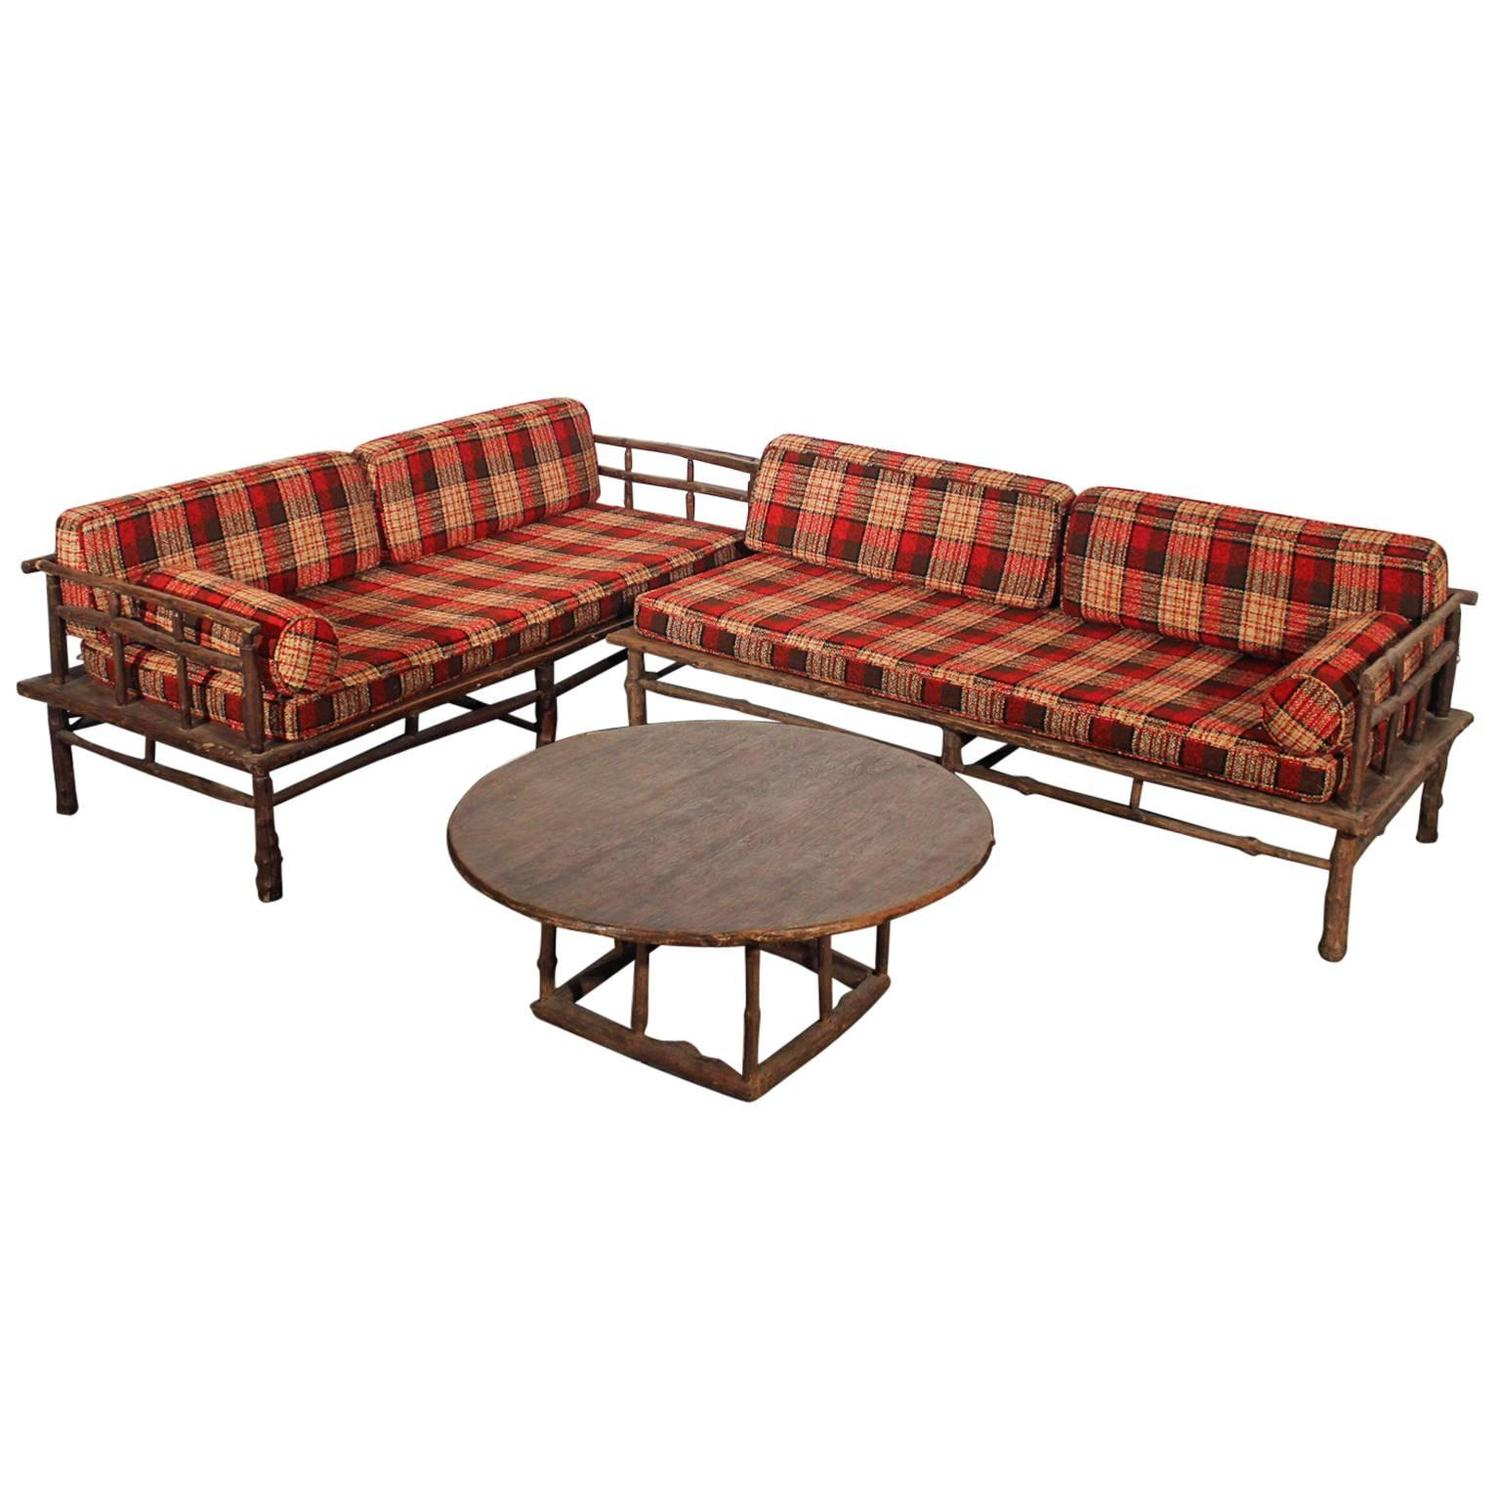 Old Hickory Style Sofa Chaise And Coffee Table Set For Sale At 1stdibs